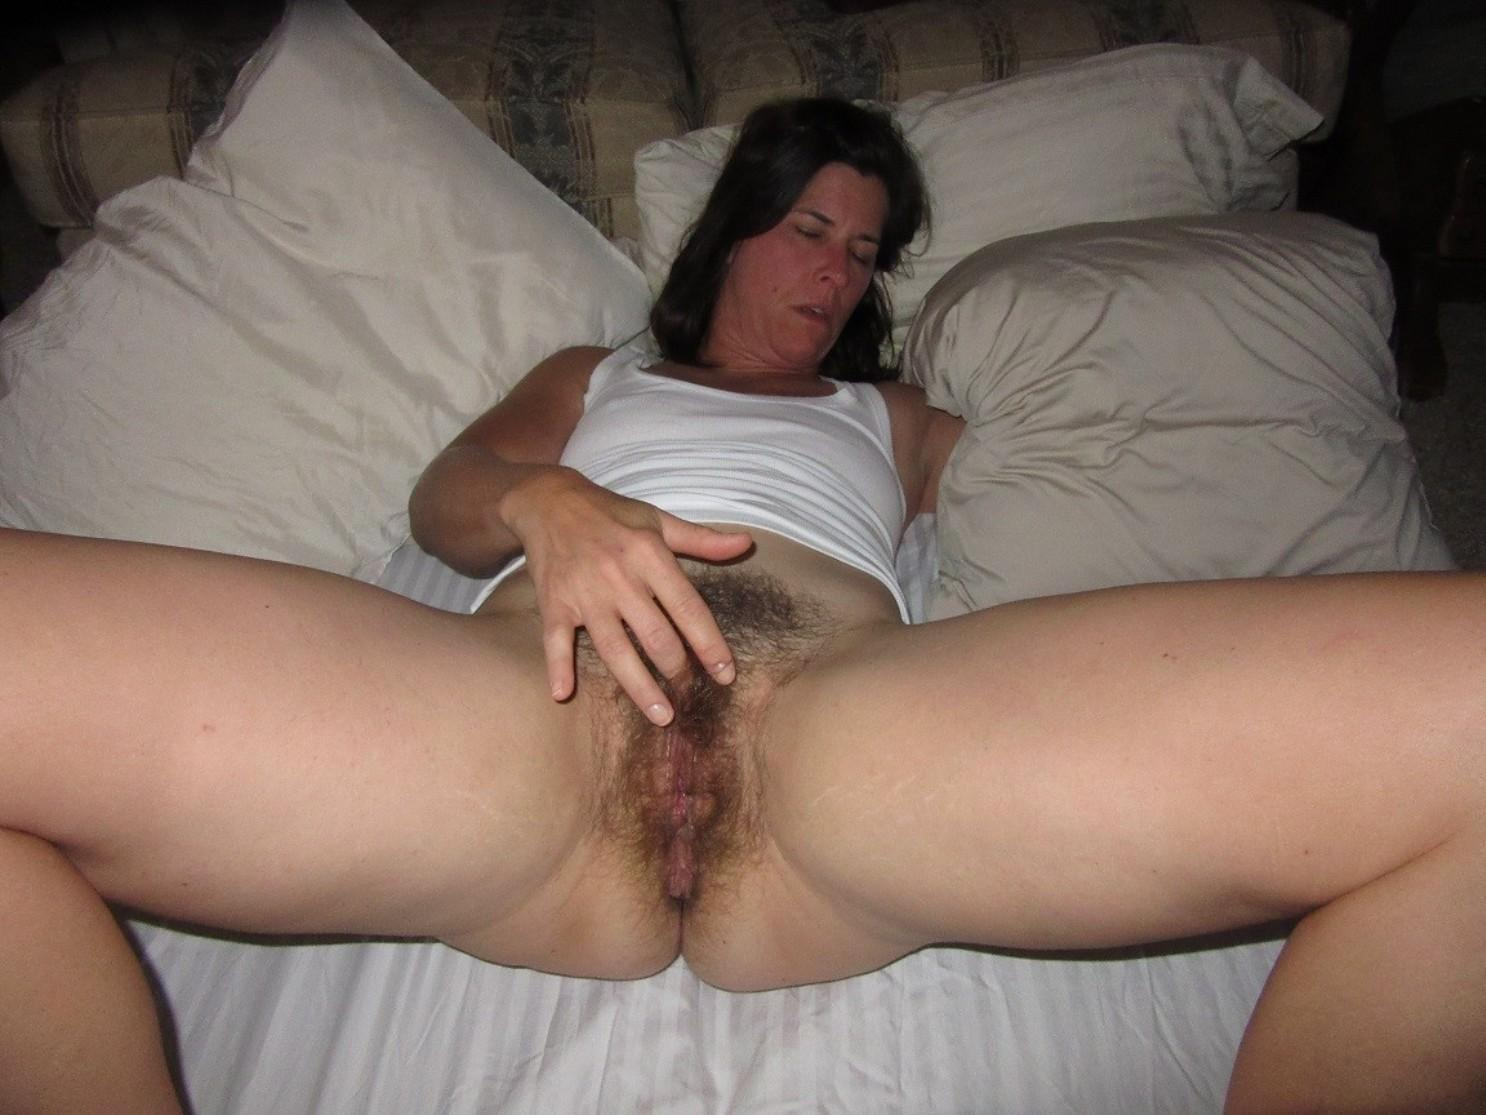 All natural and hairy pussy MILF babe posing and spreading legs